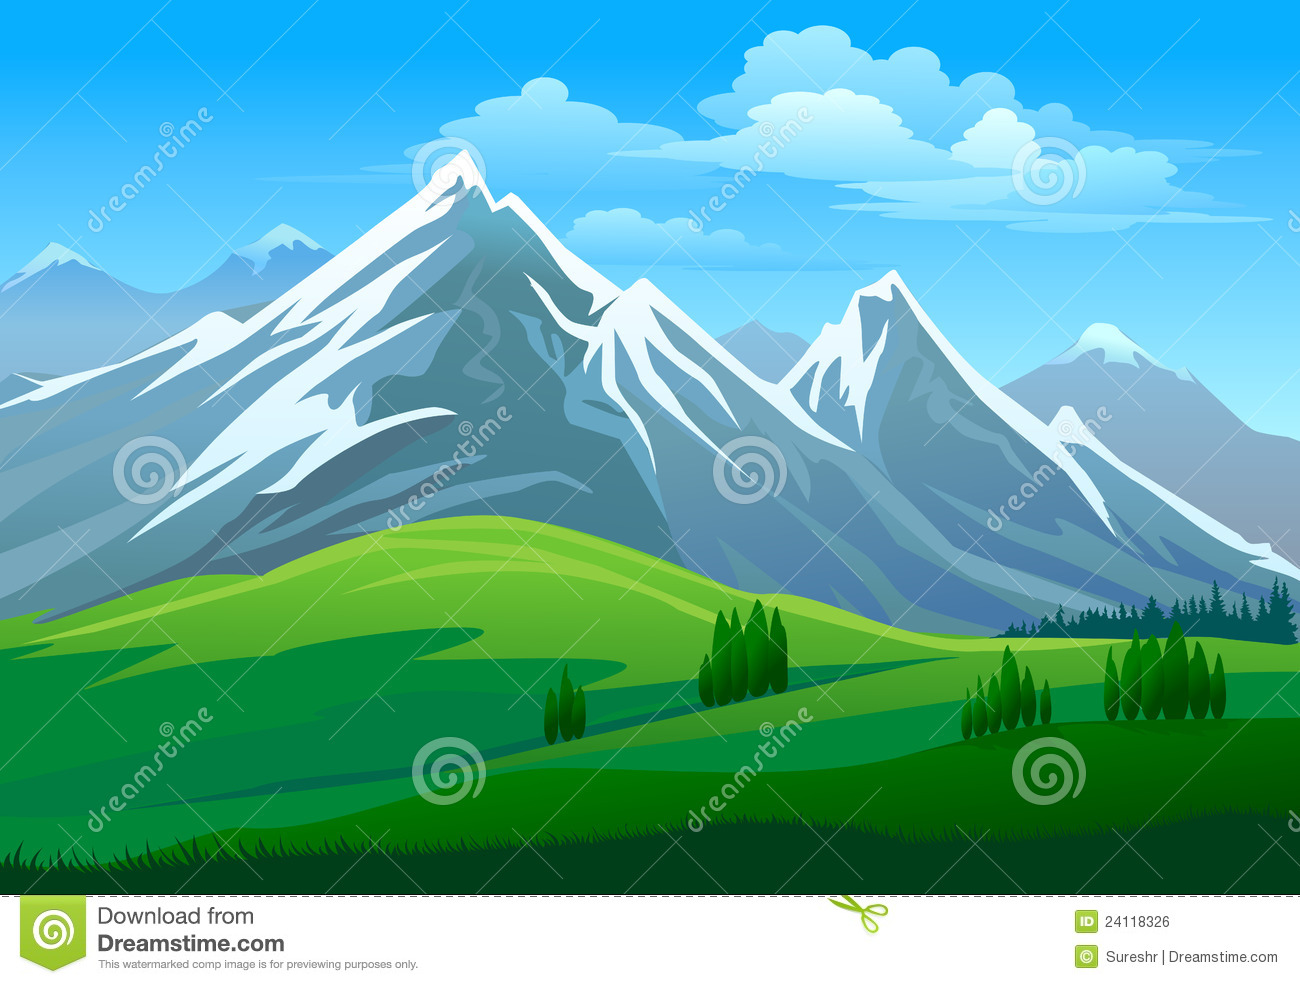 royalty free library Hills and mountains rating. Valley clipart definition